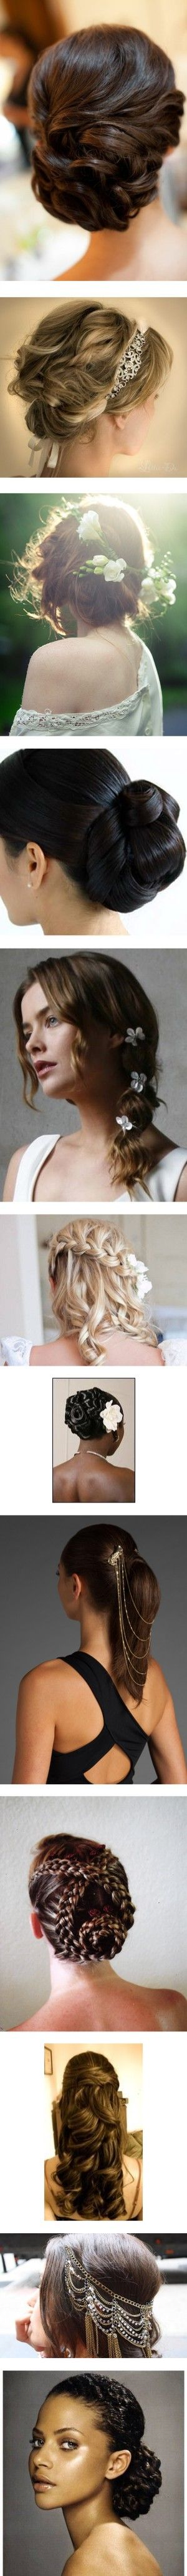 """""""goddess hair"""" by alysianfields ❤ liked on Polyvore"""